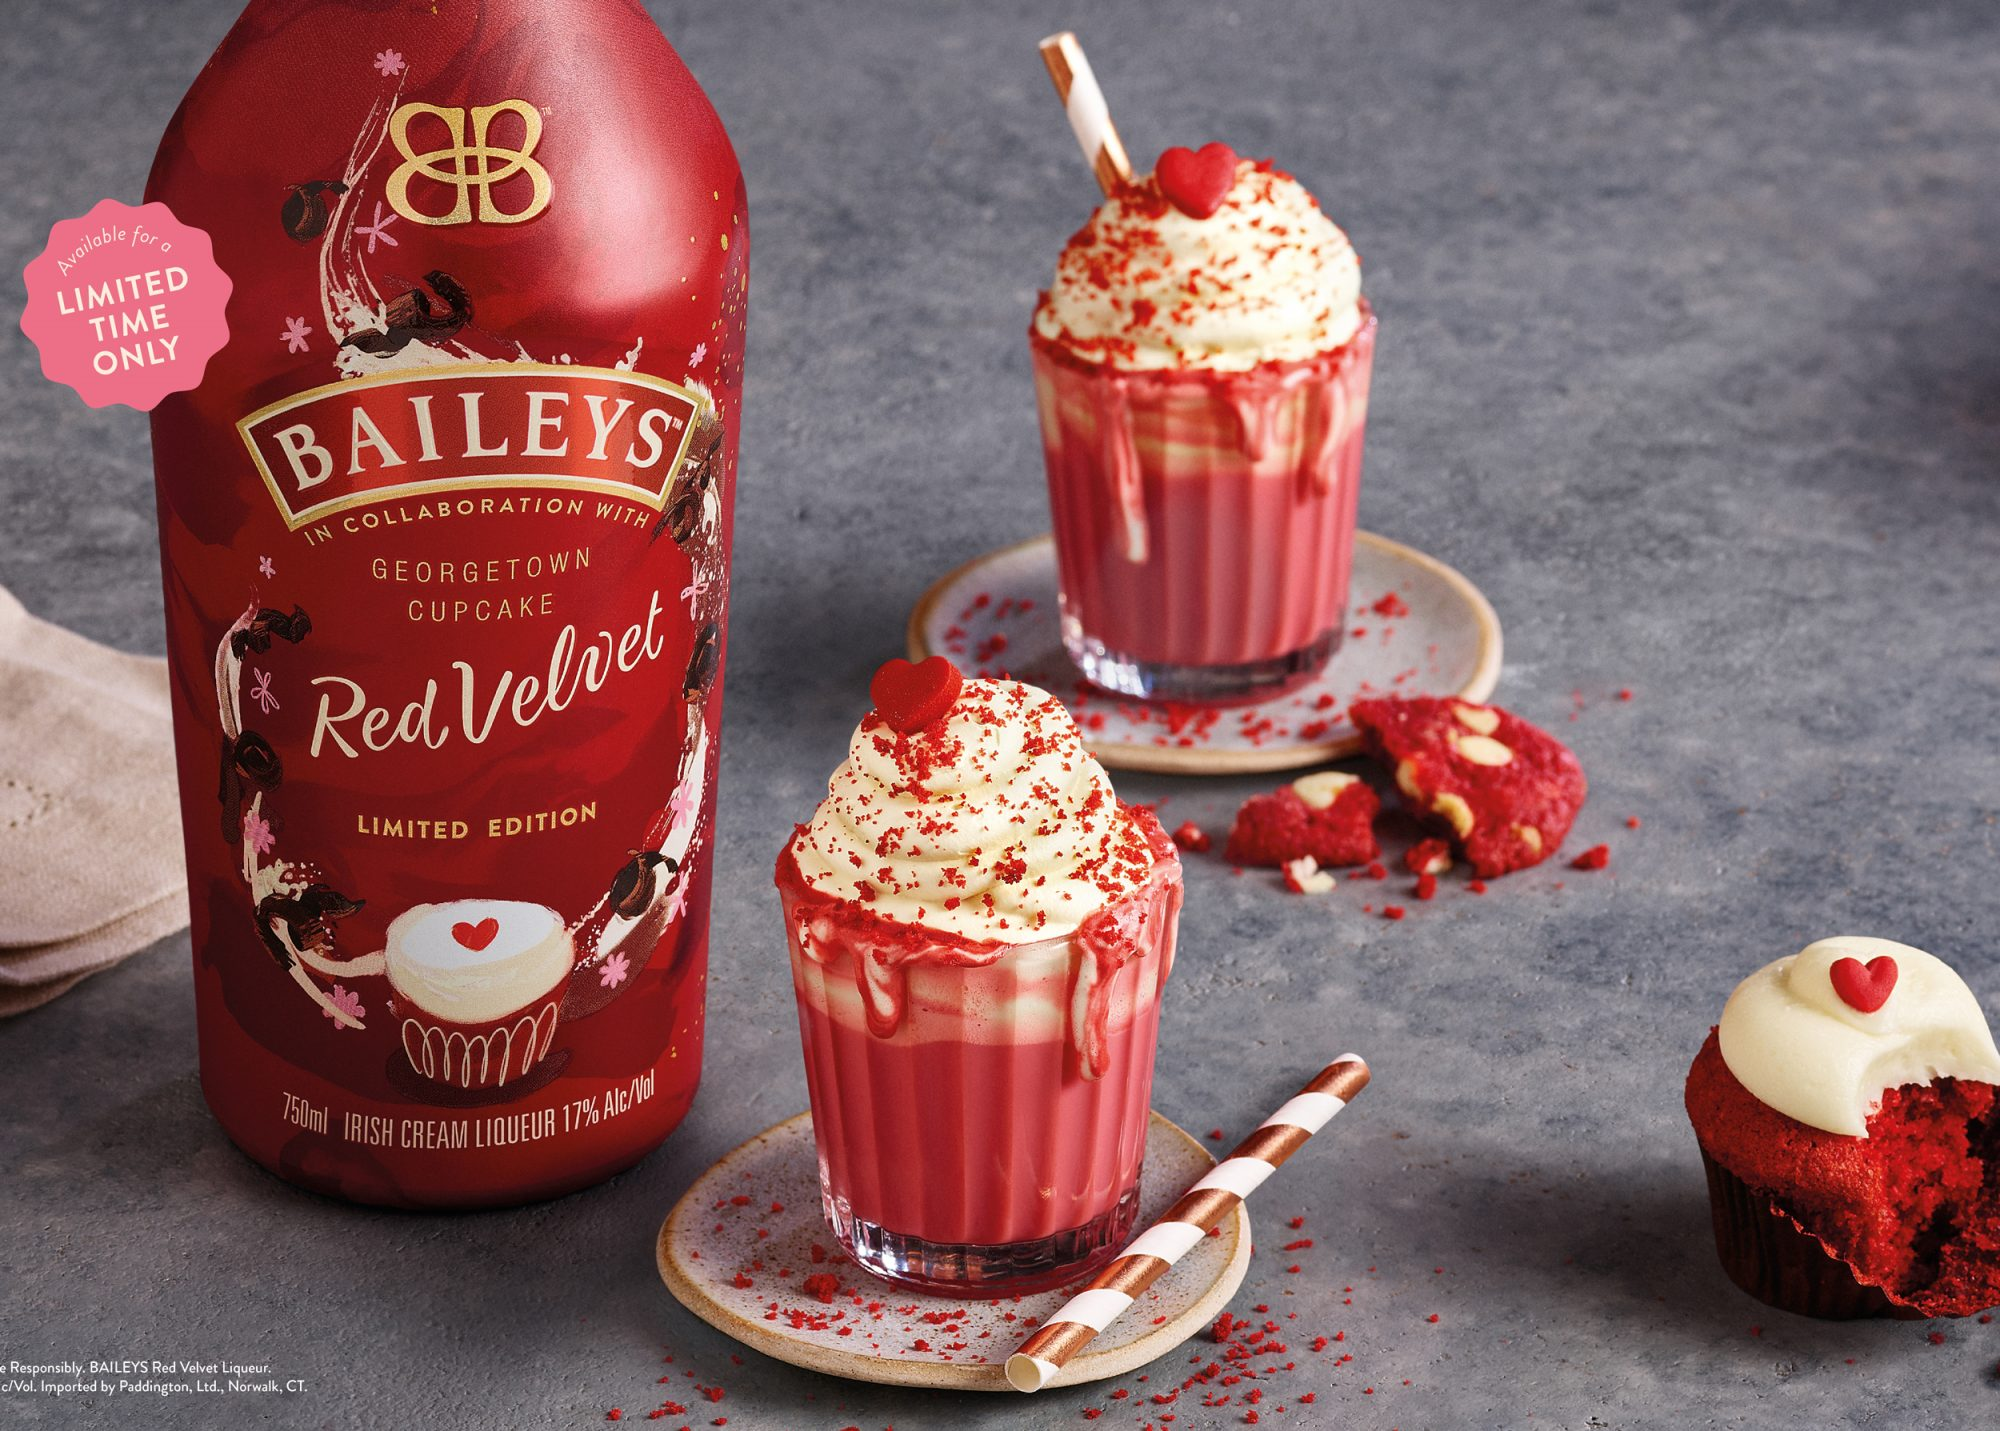 Bailey's Red Velvet Cupcake